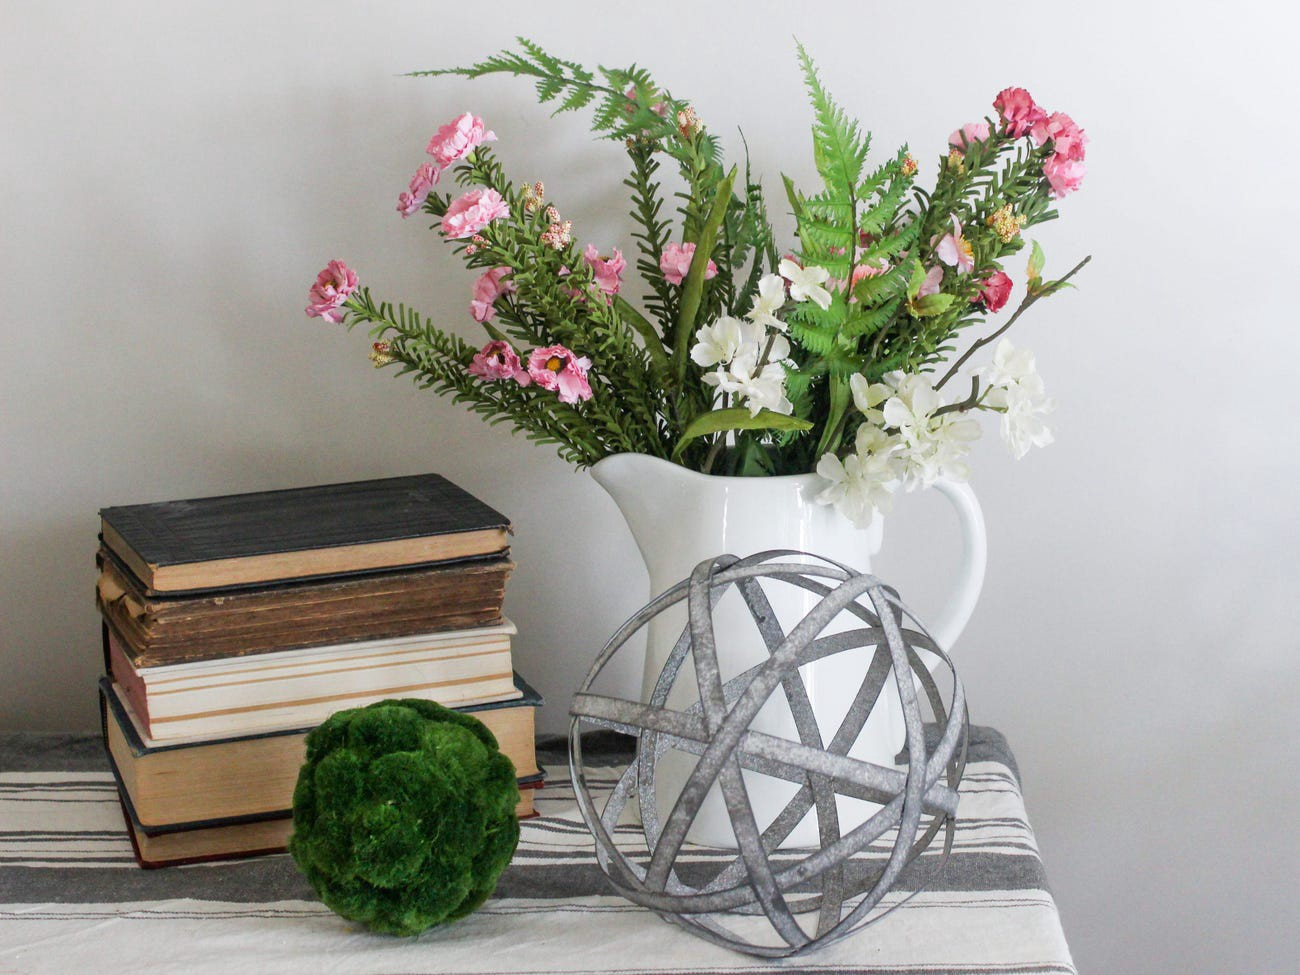 Flowers in a vase next to a stack of books.